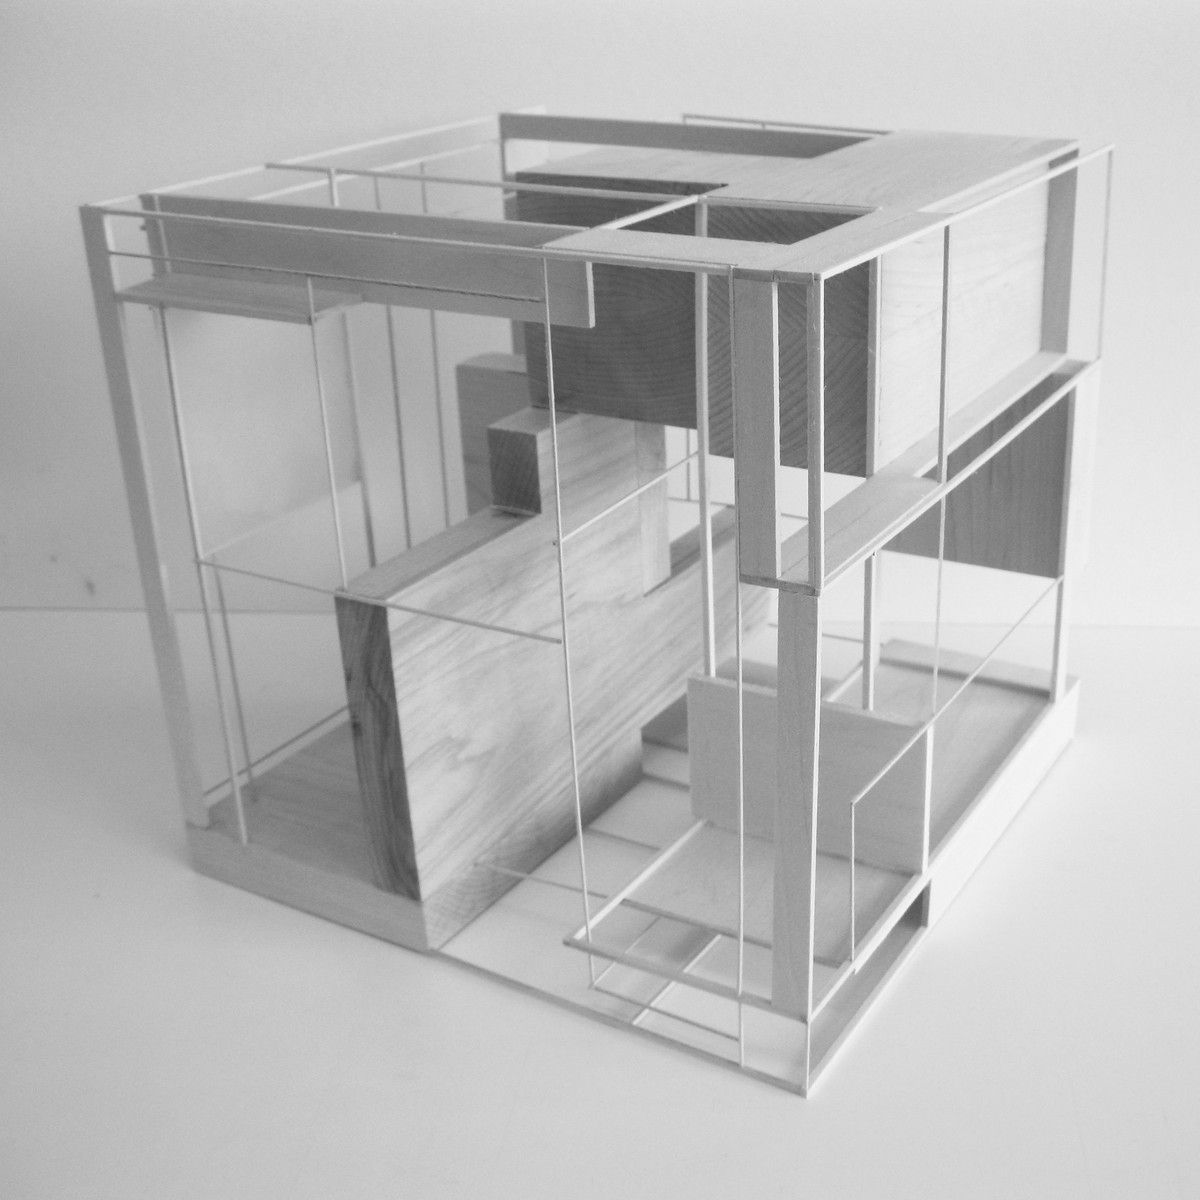 CUBE CONSTRUCT / final design proposal   Branko Micic   Archinect